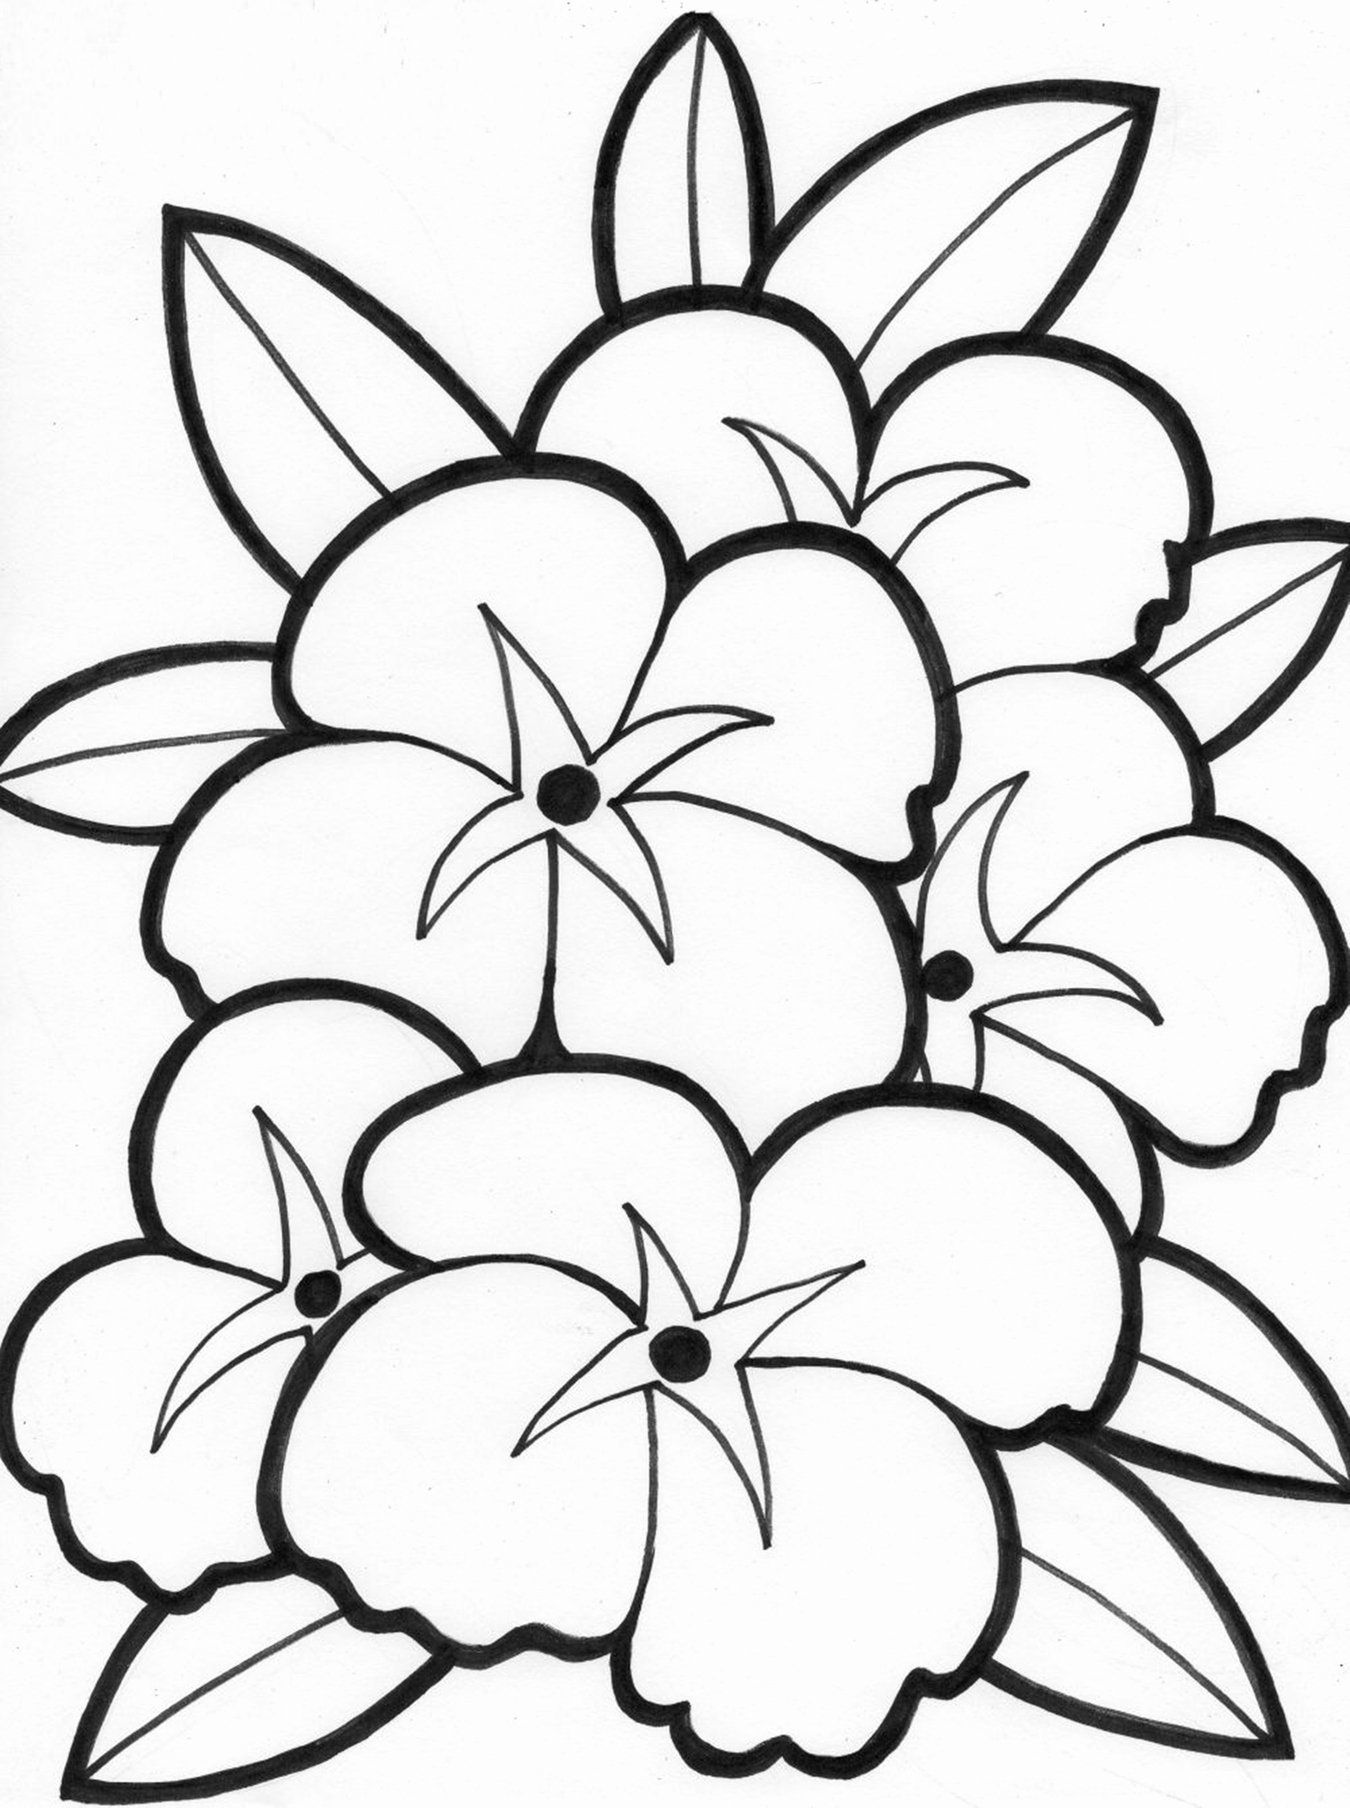 Coloring Flowers For Kids Inspirational Free Printable Flower Coloring Pages For K Summer Coloring Pages Printable Flower Coloring Pages Flower Coloring Sheets